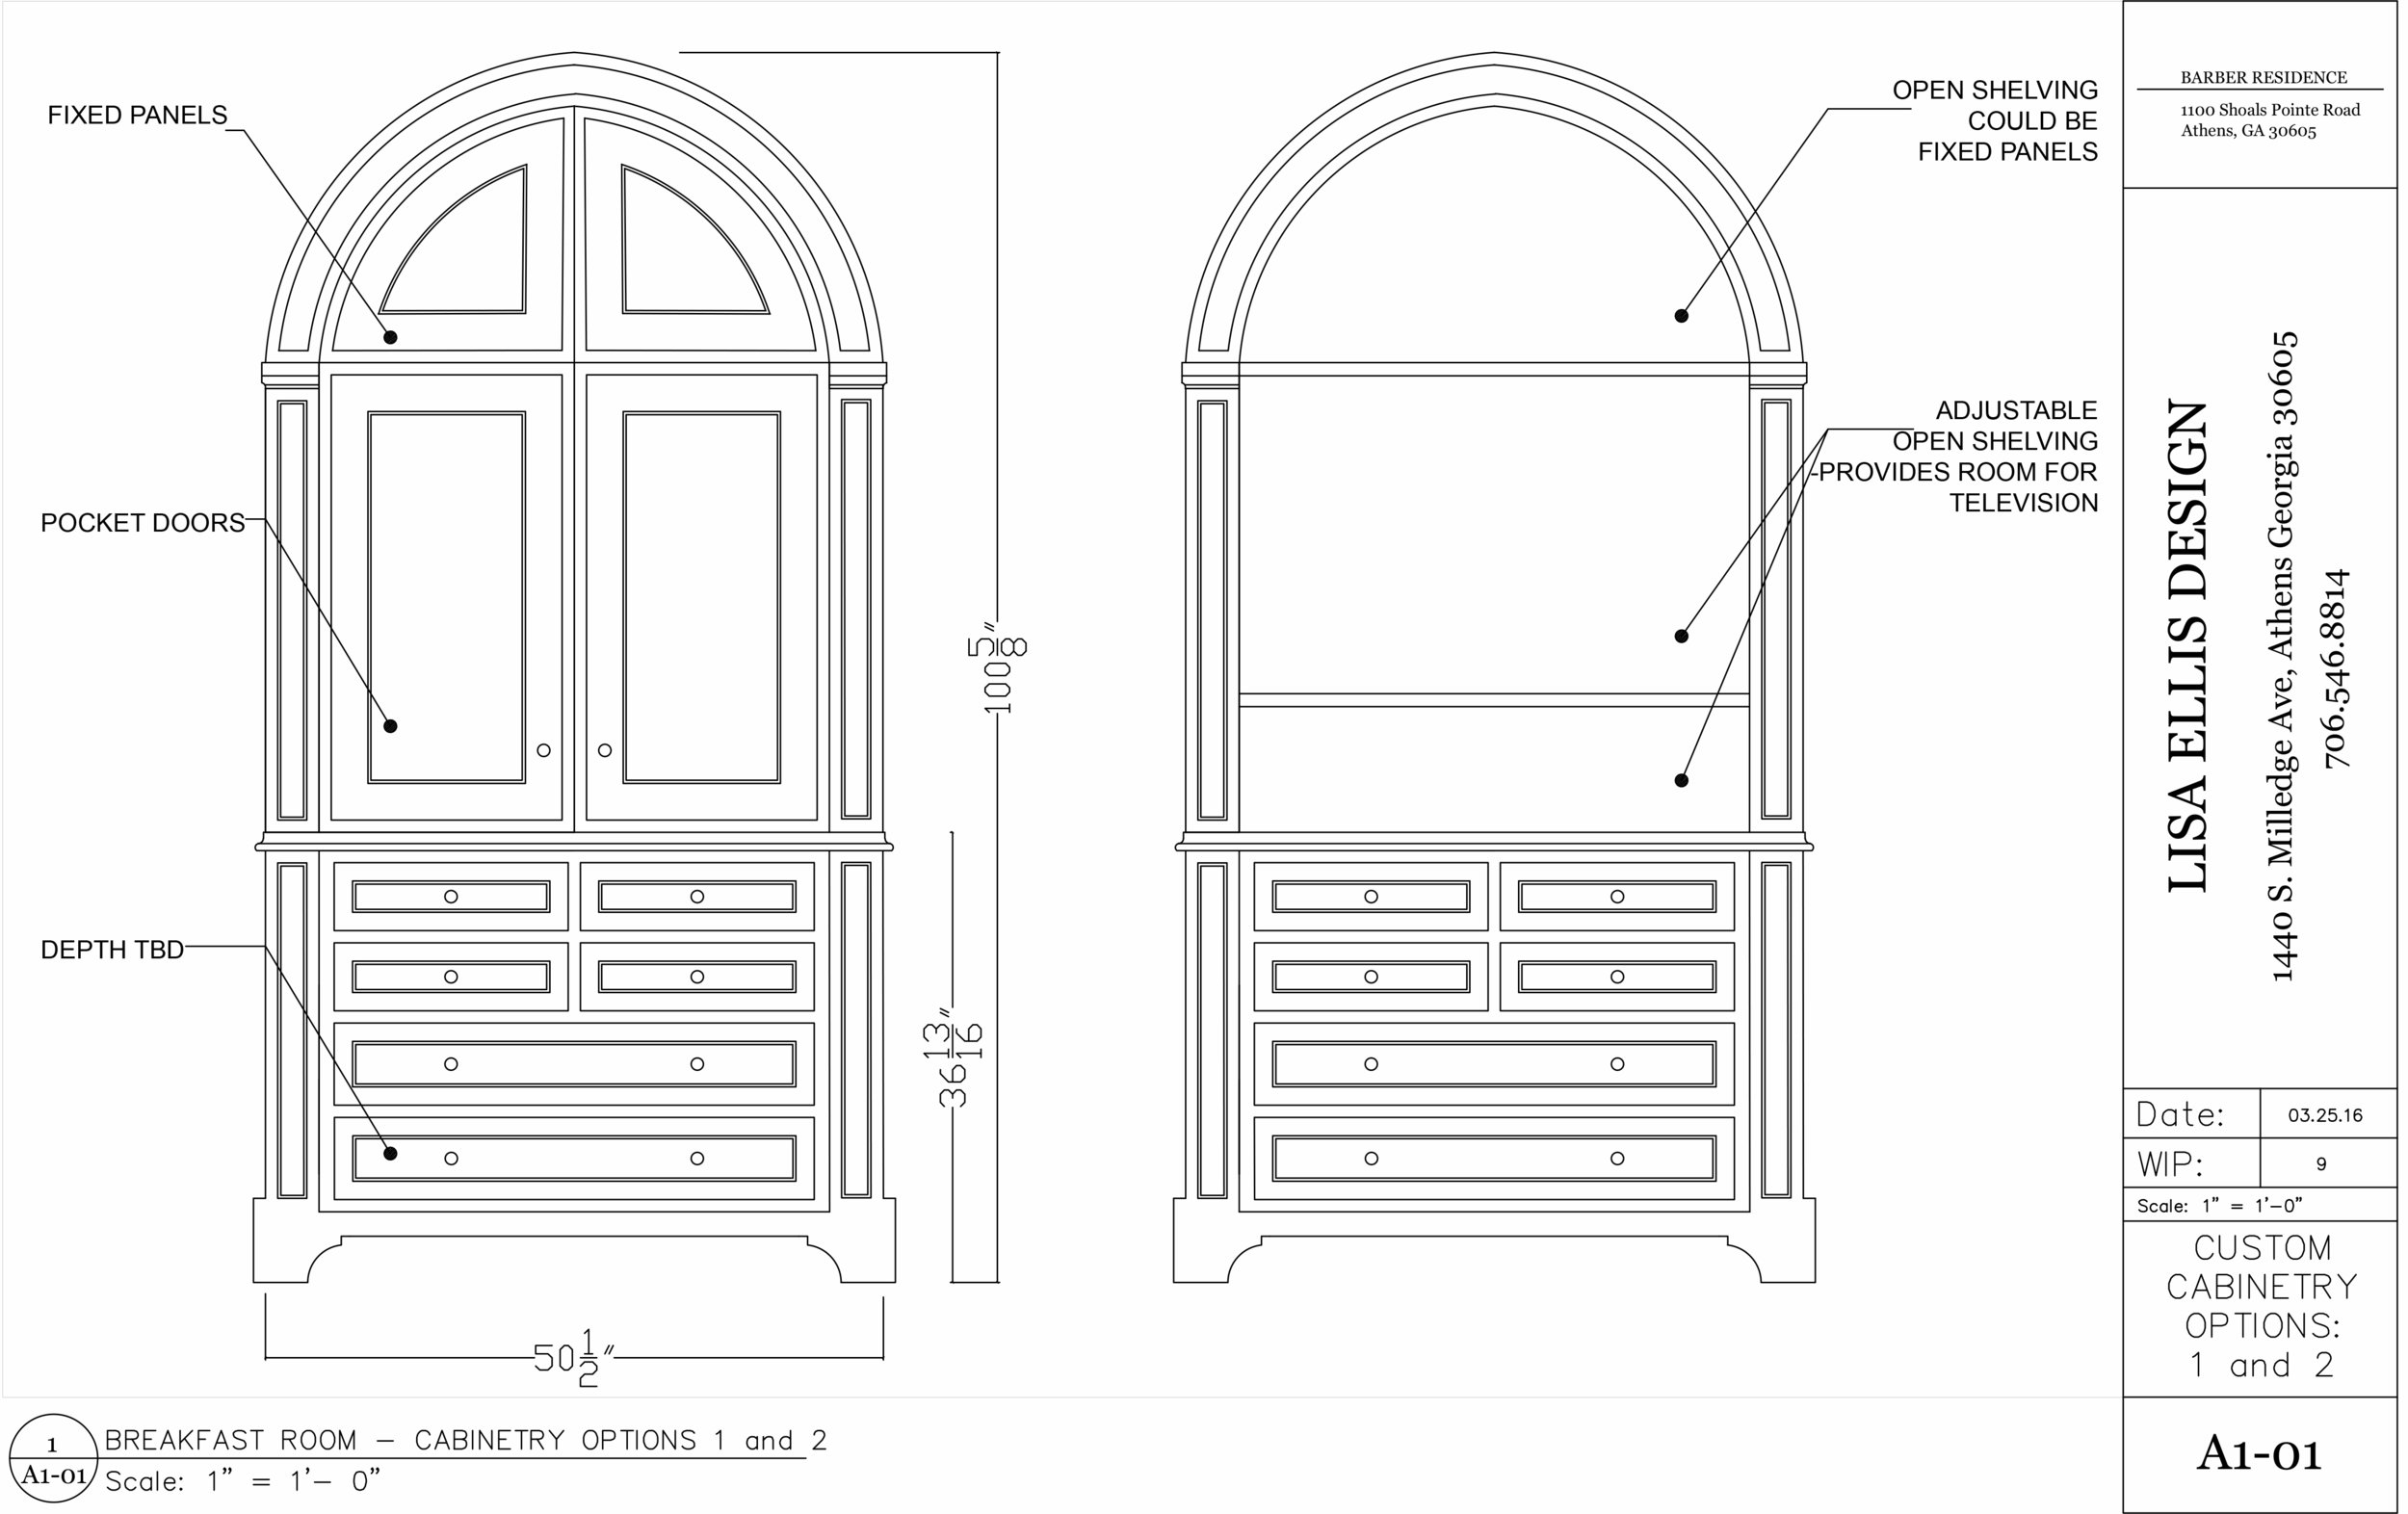 Barber_breakfast room cabinetry_options 1 and 2_3-24-16.jpg